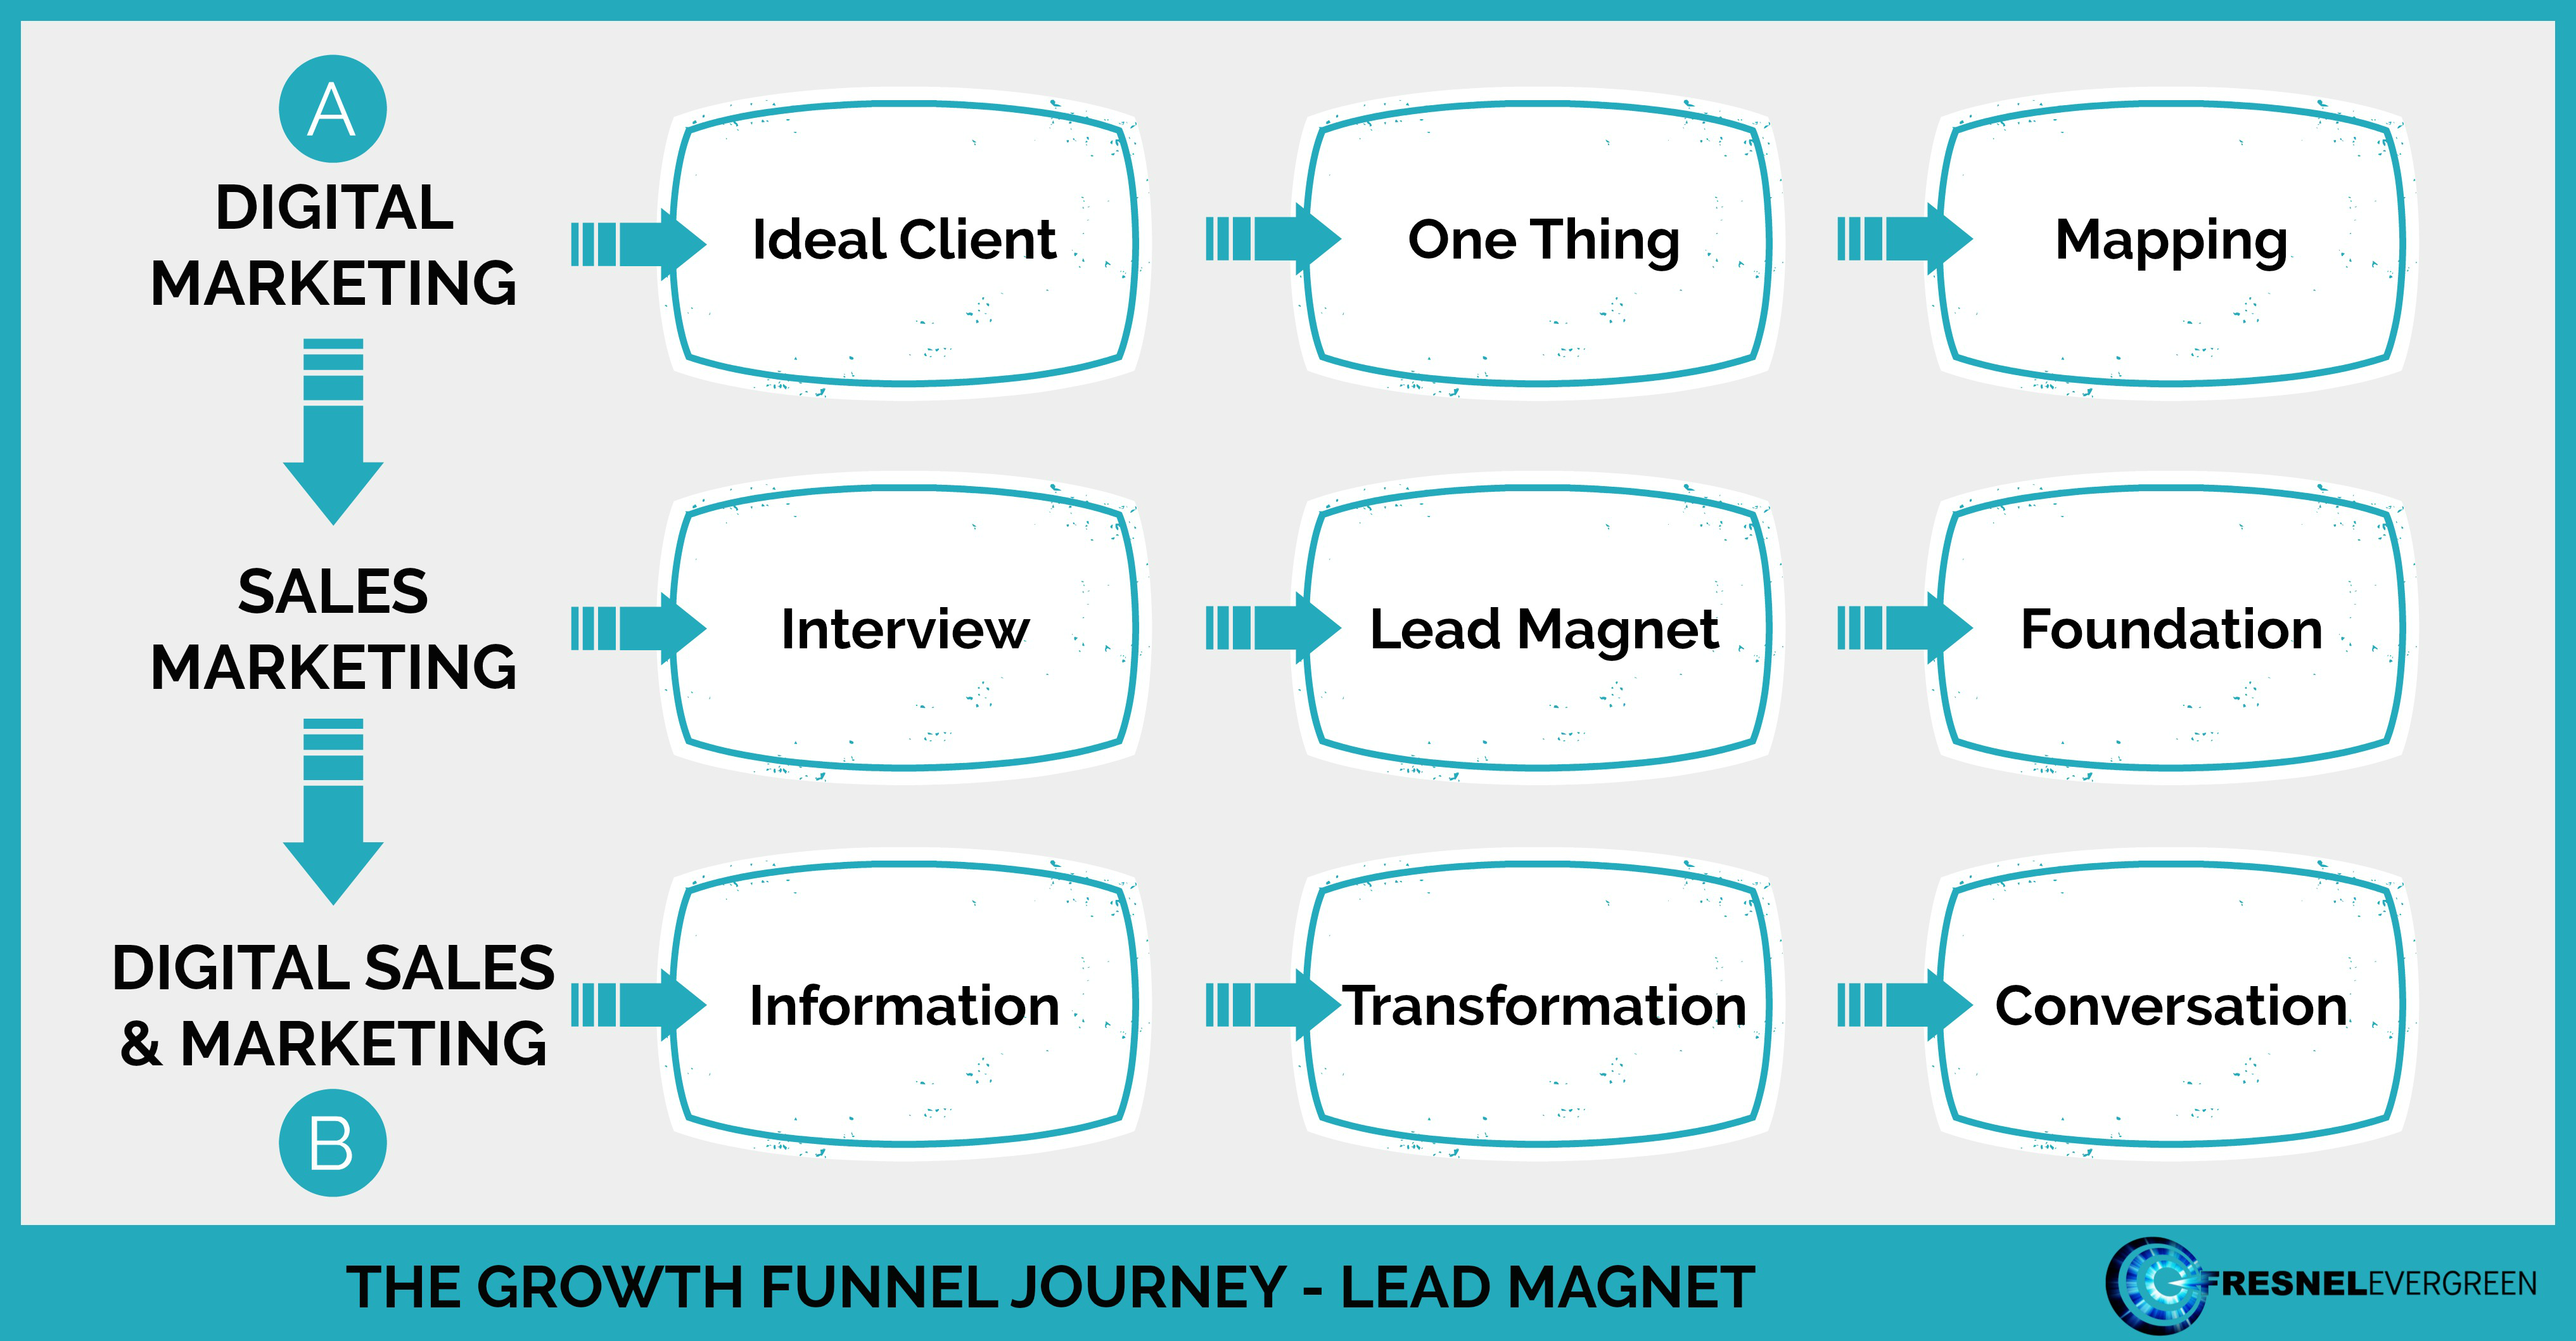 The Growth Funnel Journey Lead Magnet